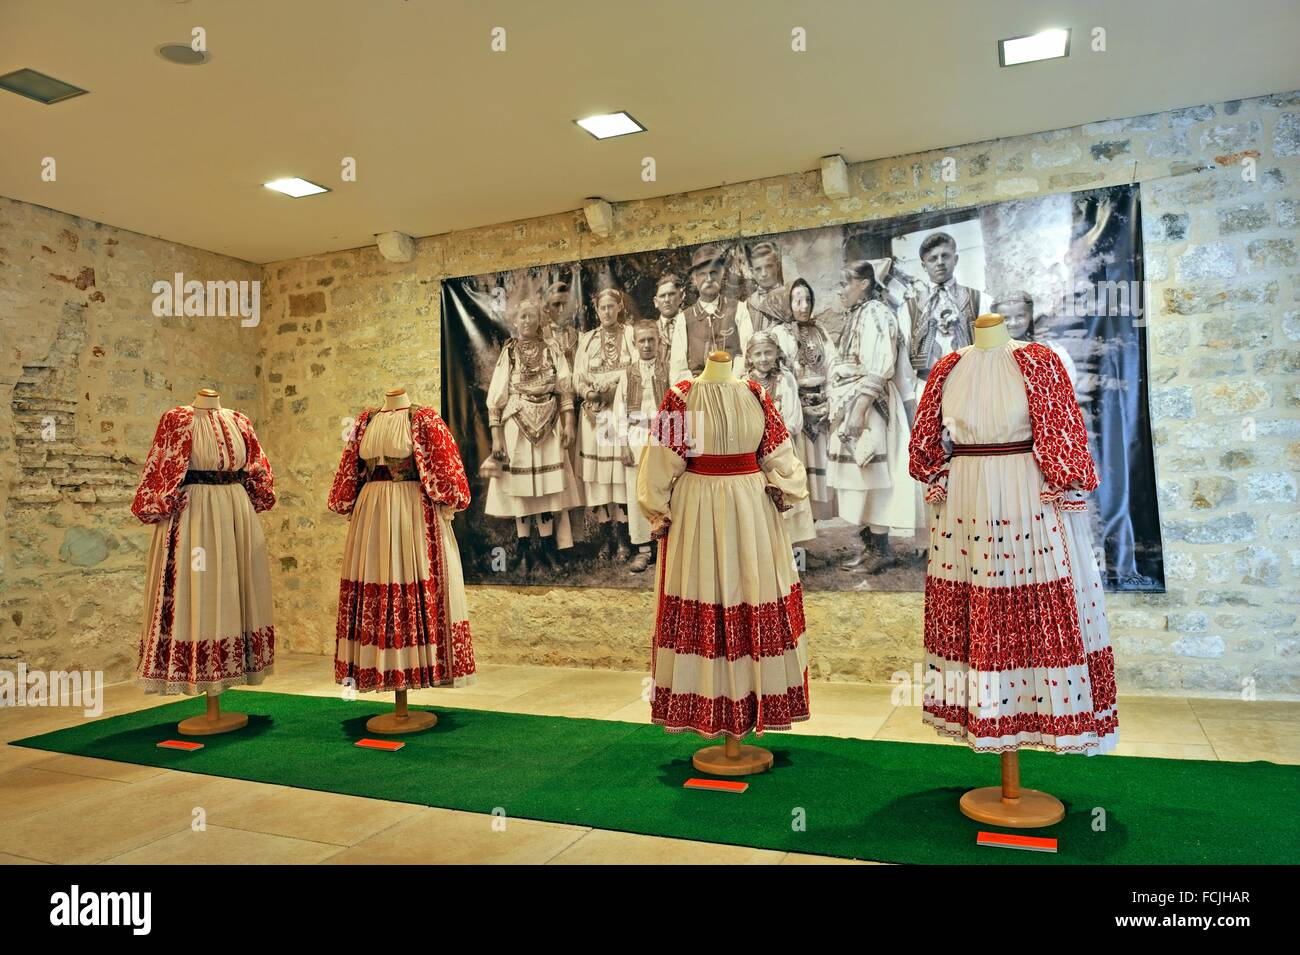 Ethnographic Museum, Old Town, Split, Croatia, Southeast Europe. - Stock Image